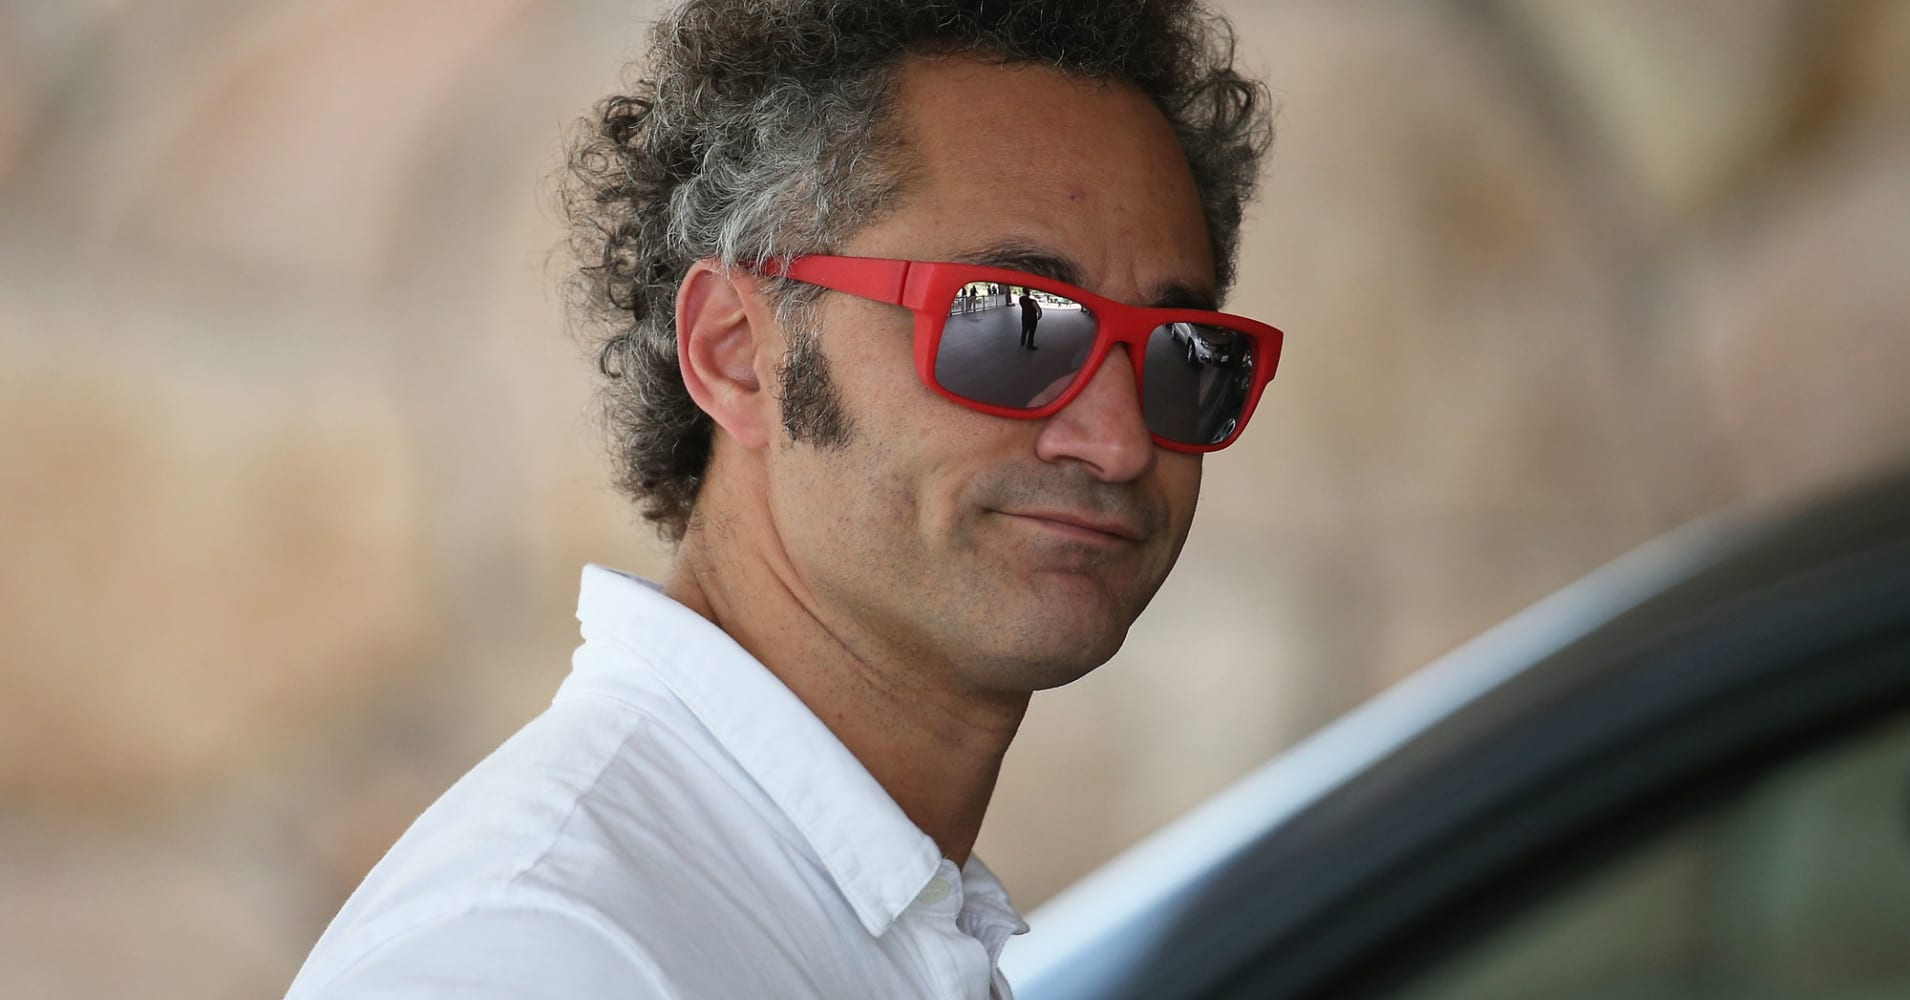 When is palantir ipo